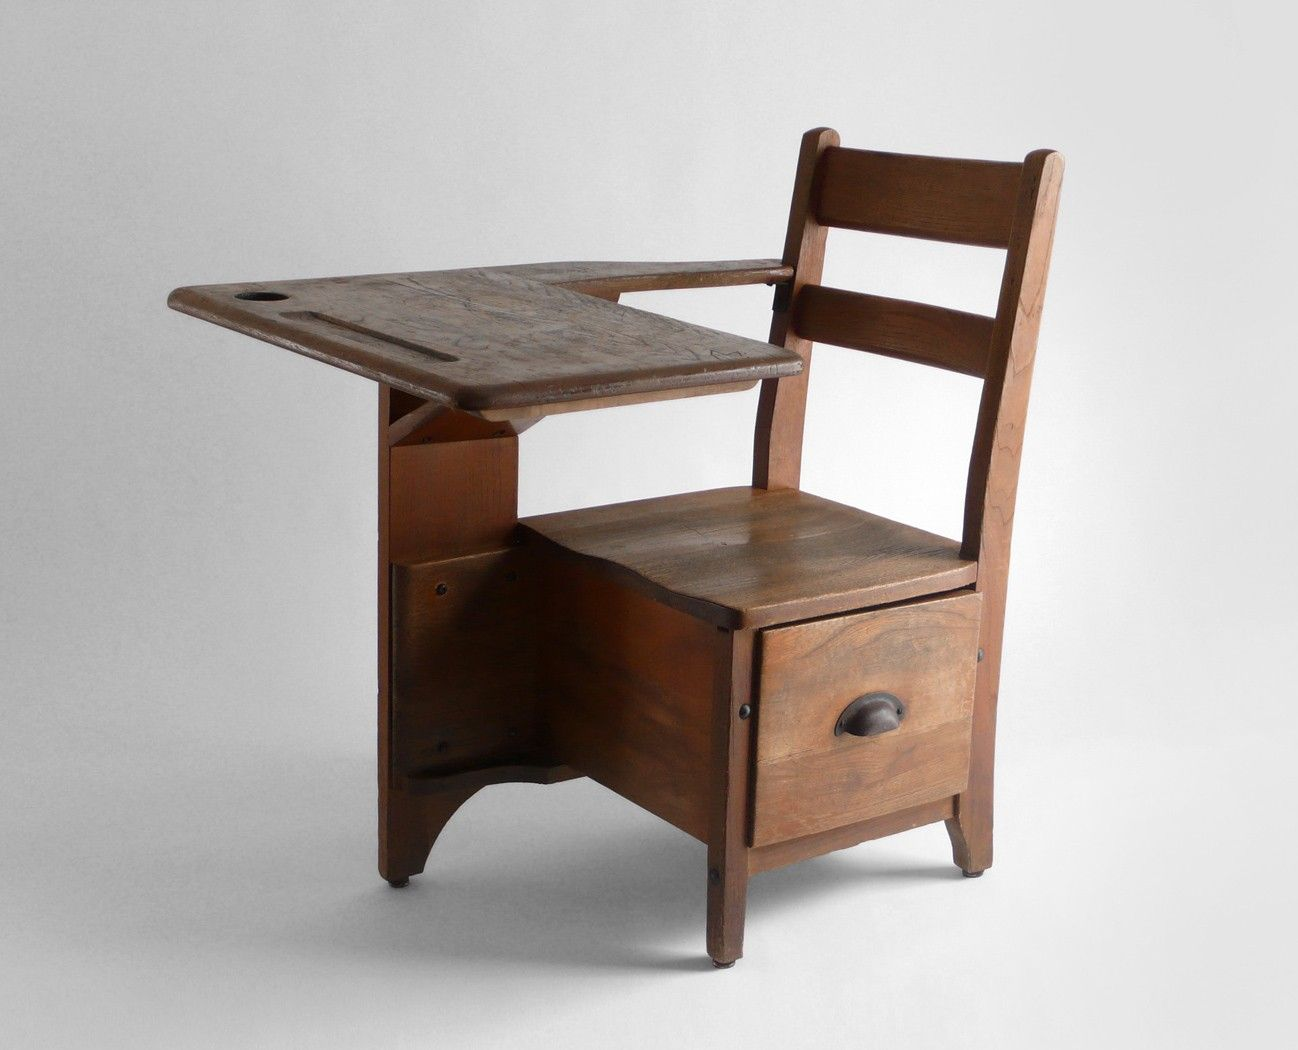 Used A Desk Just Like This In 1st 4th Grade Went To A One Room